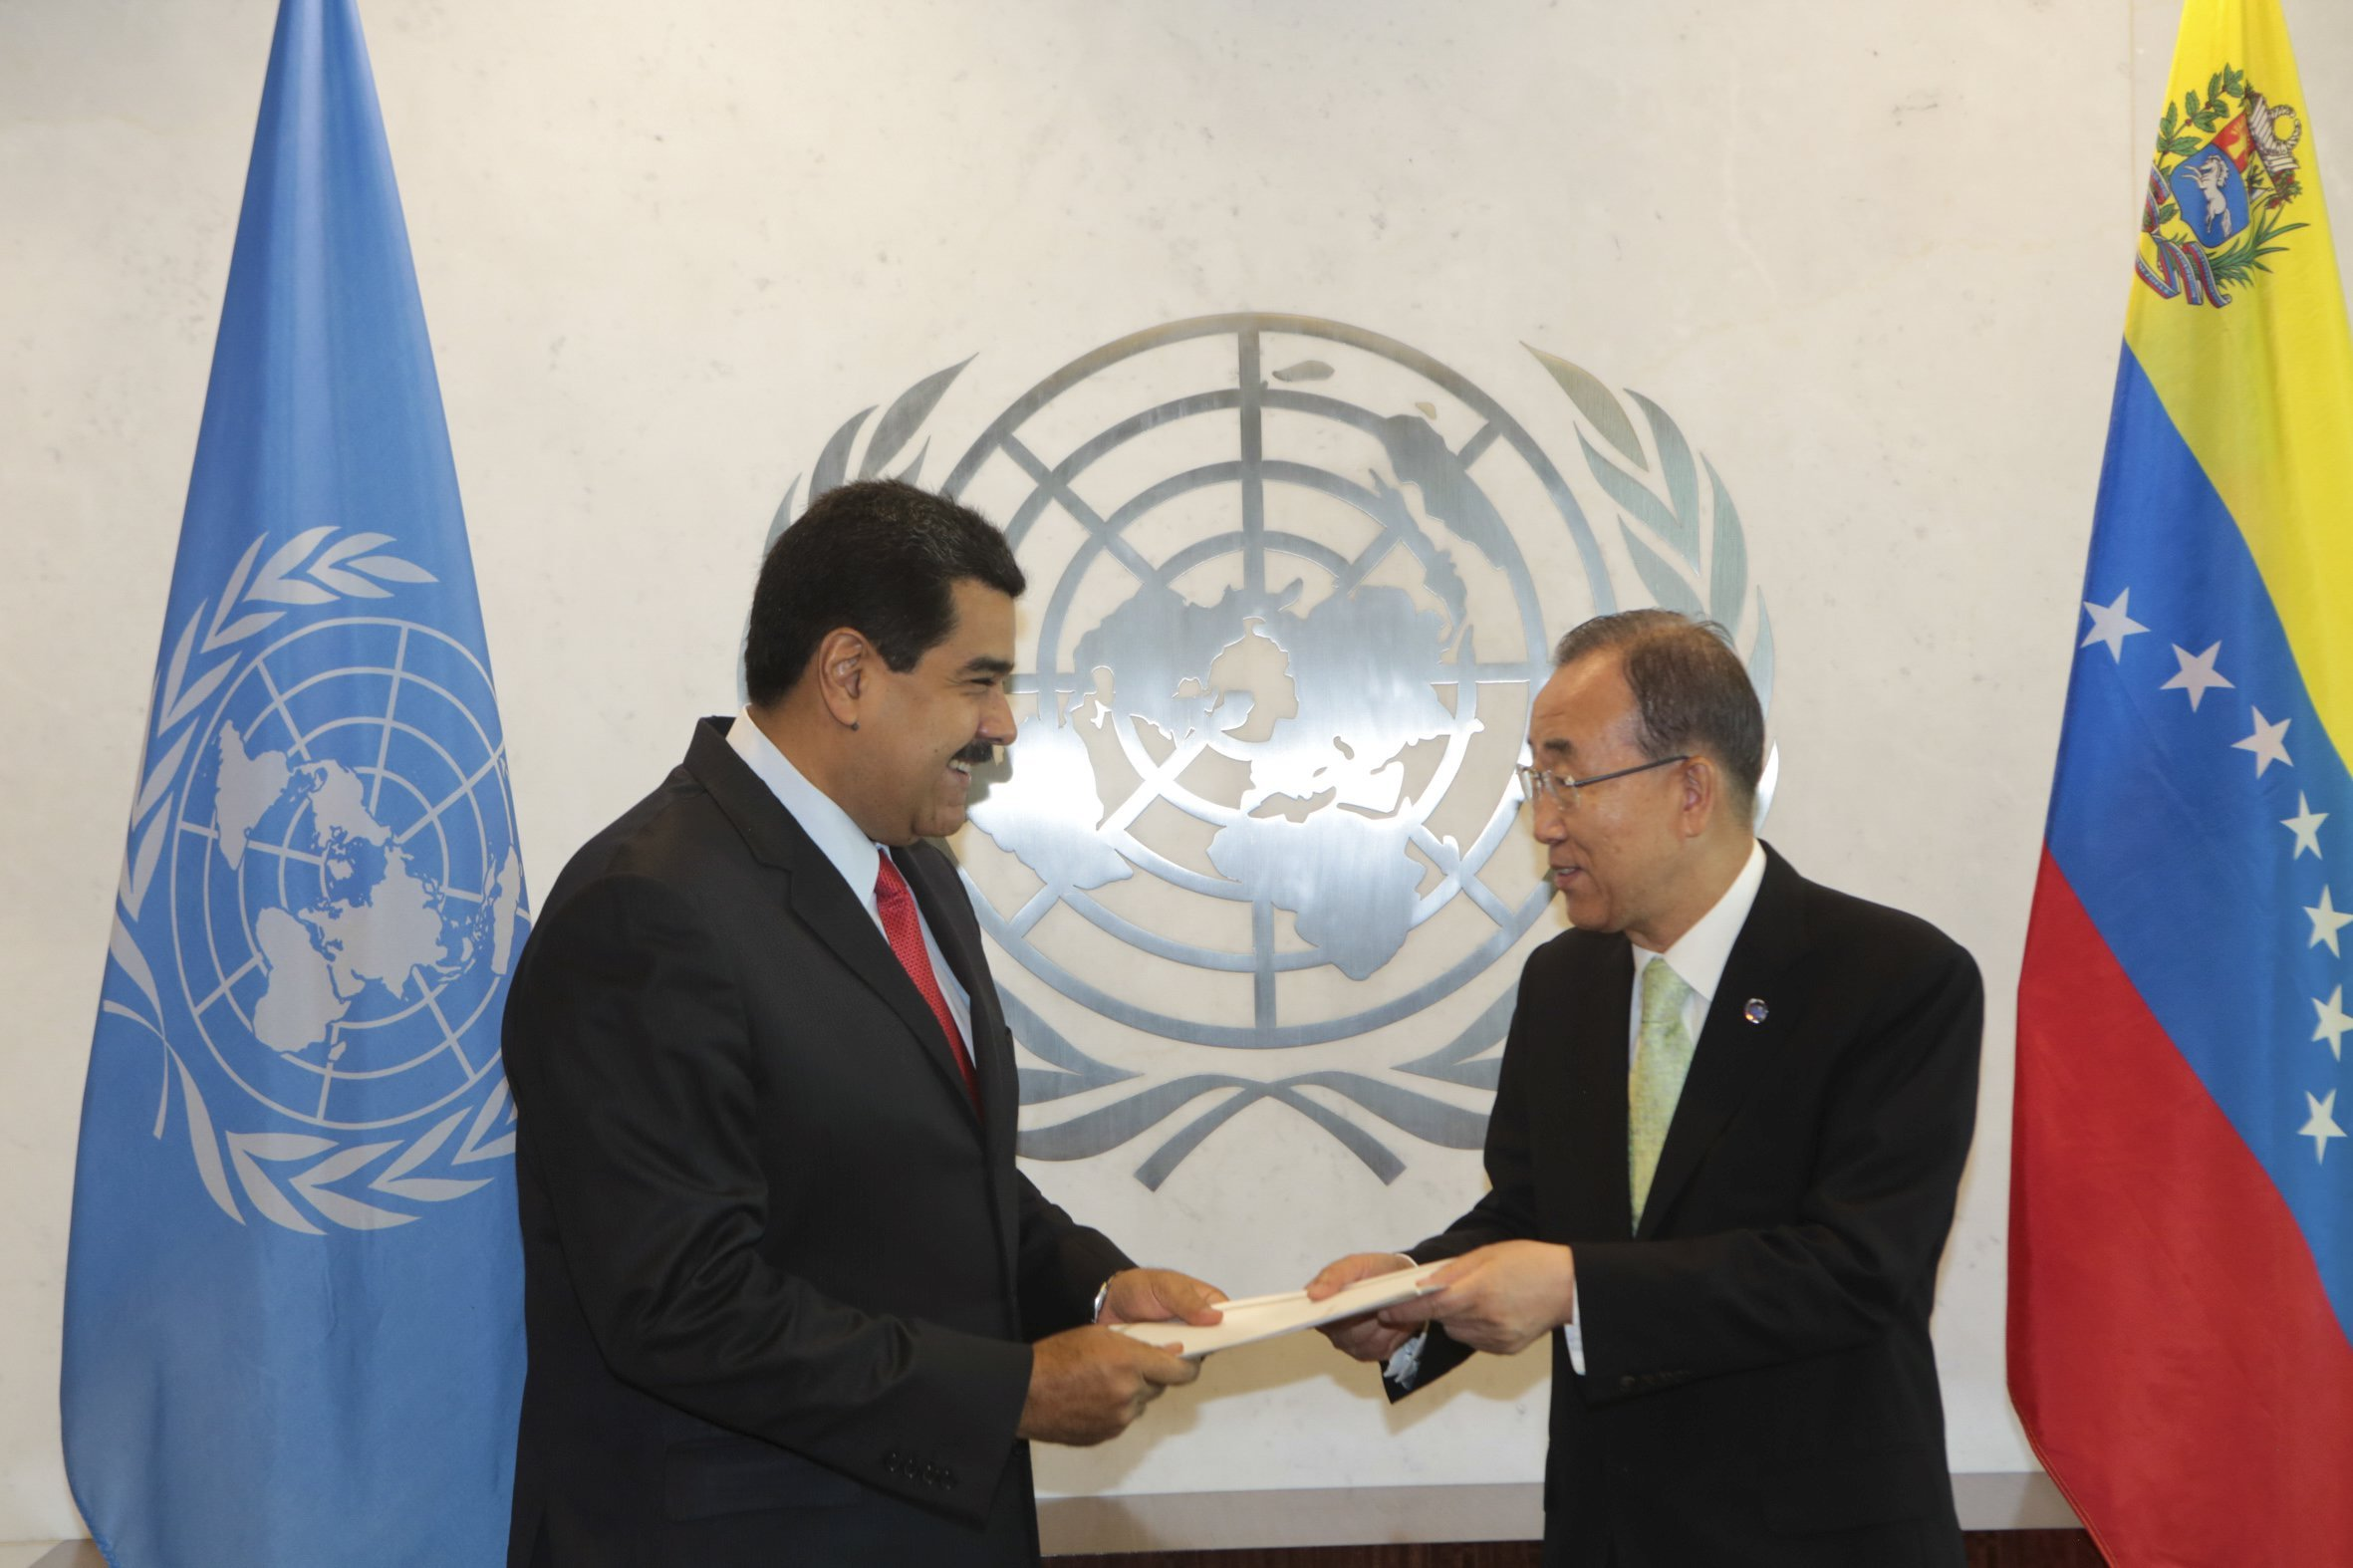 U.N. Secretary-General Ban Ki-moon (R) and Venezuela's President Nicolas Maduro, hold a document as they talk, during their meeting at the United Nations headquarters in New York